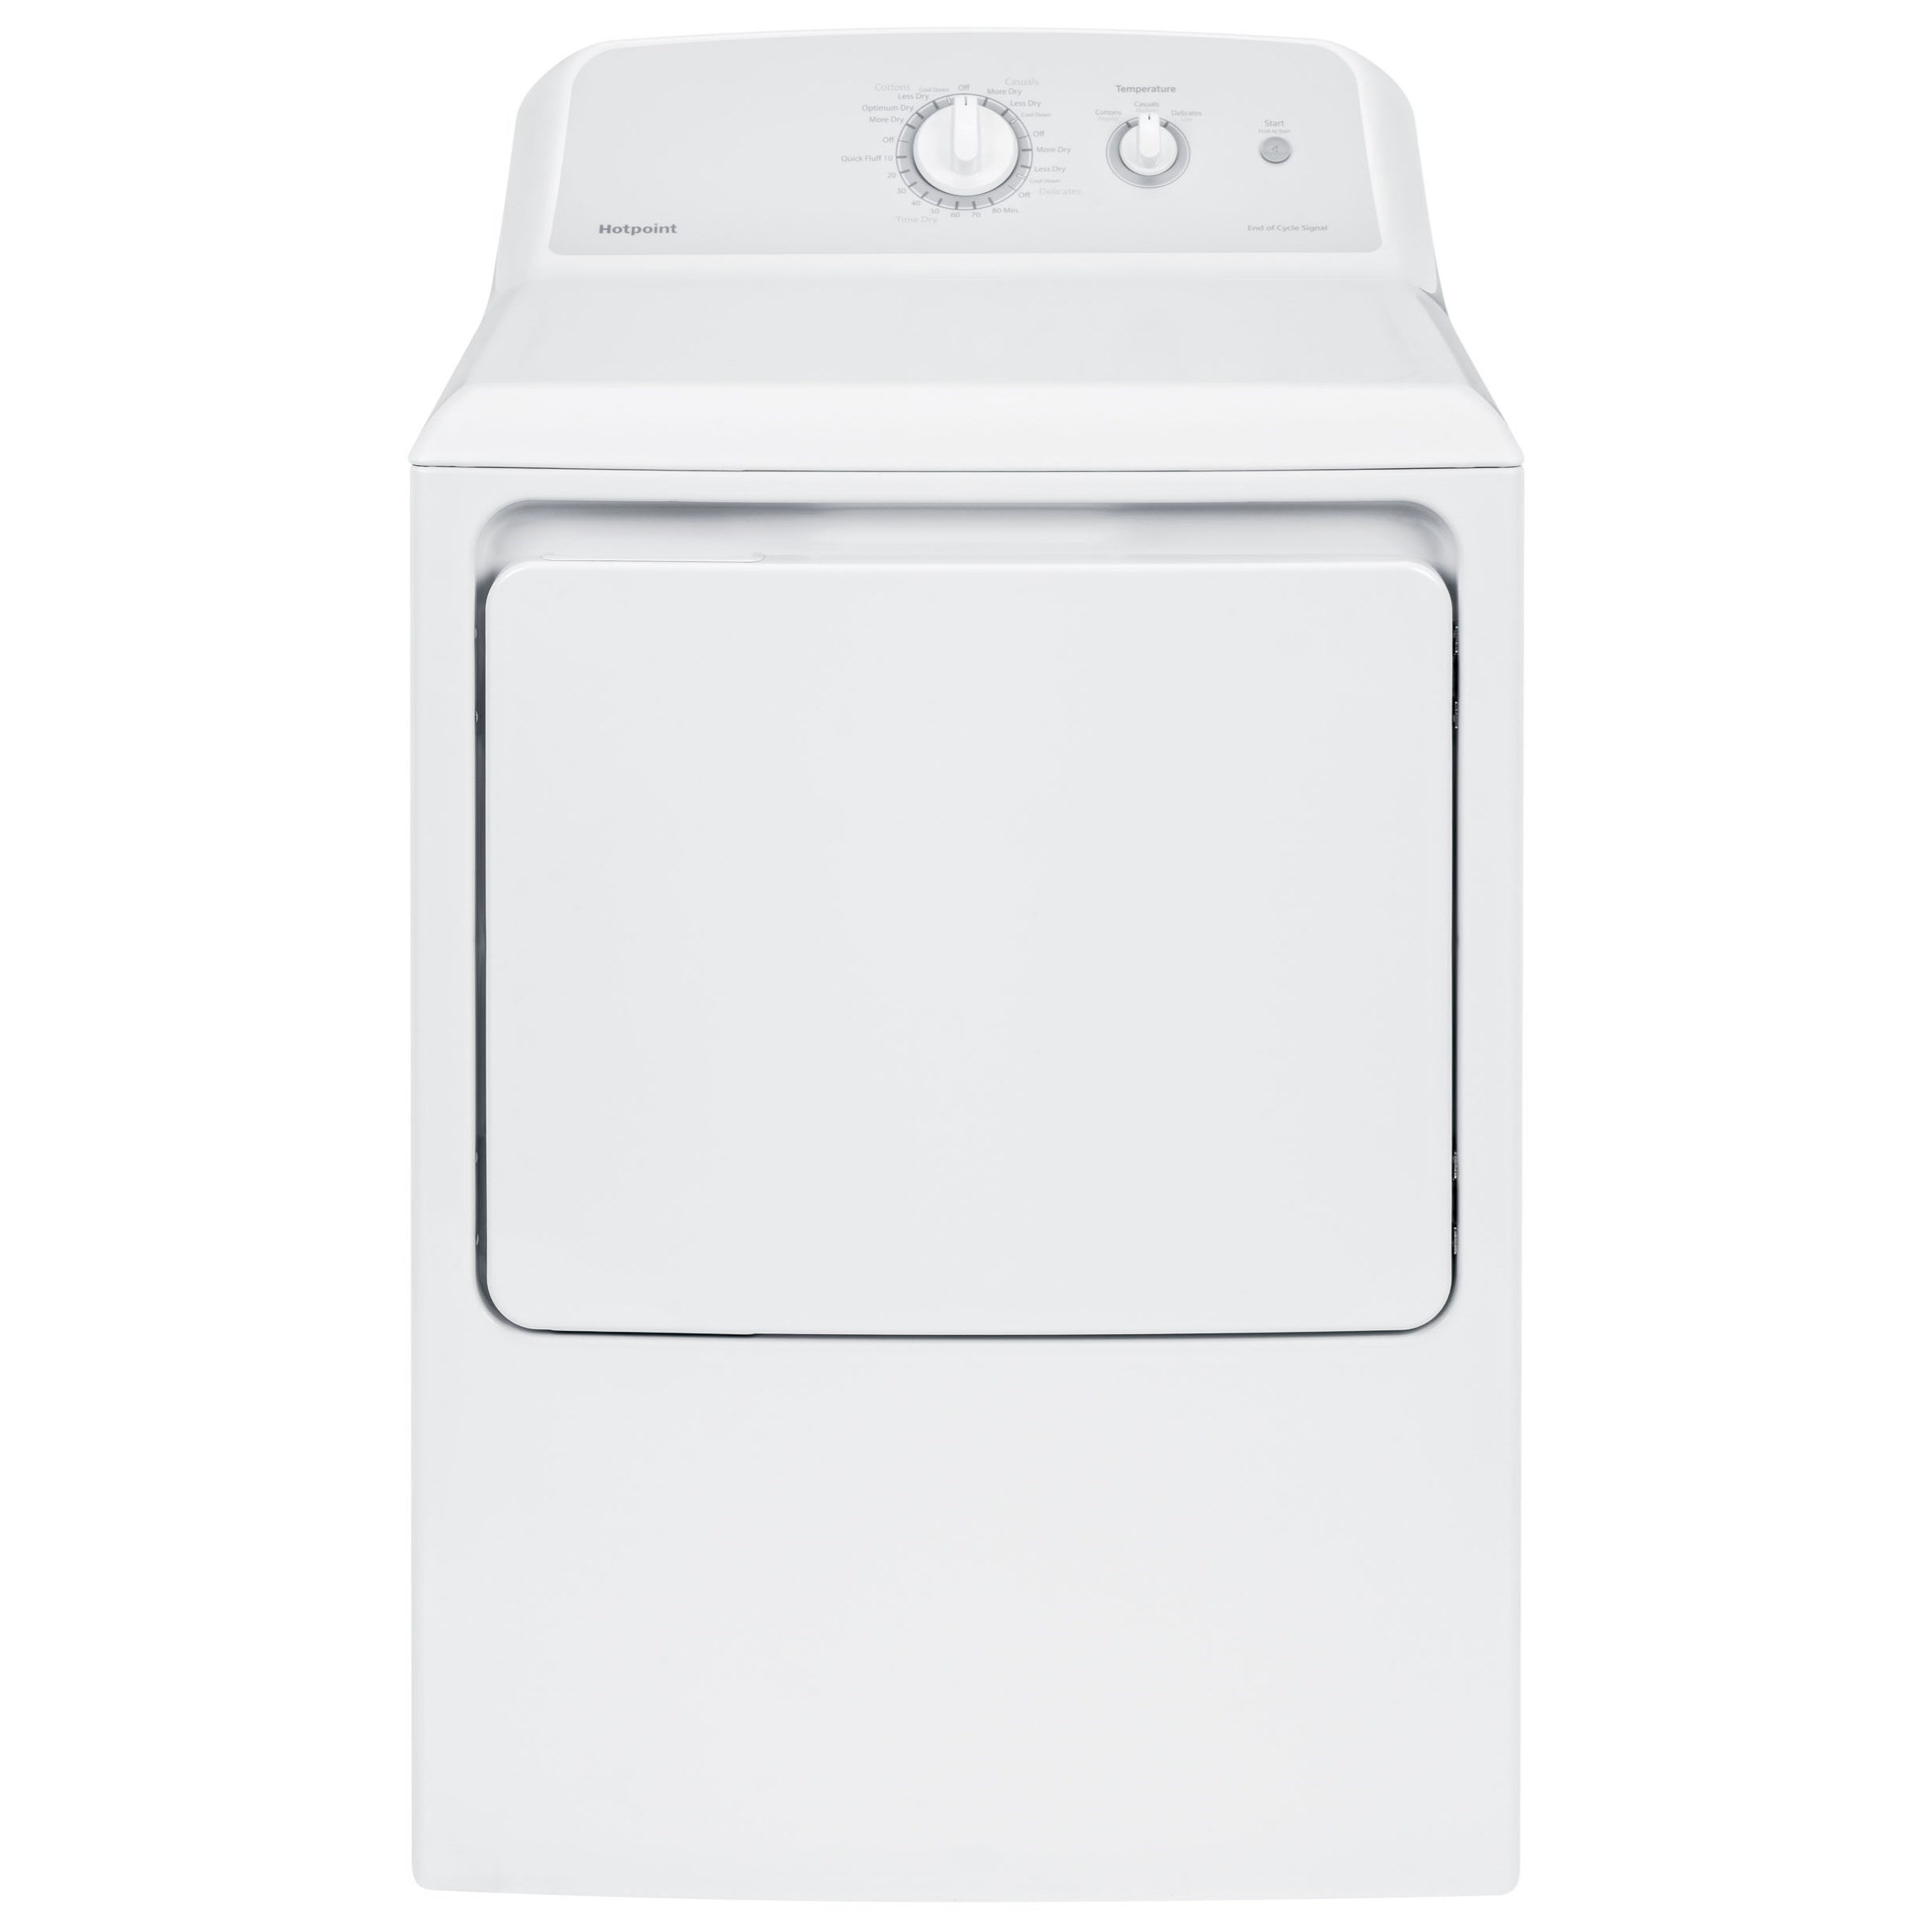 Dryers 6.2 Cu.Ft. Aluminized Alloy Electric Dryer by Hotpoint at Furniture Fair - North Carolina